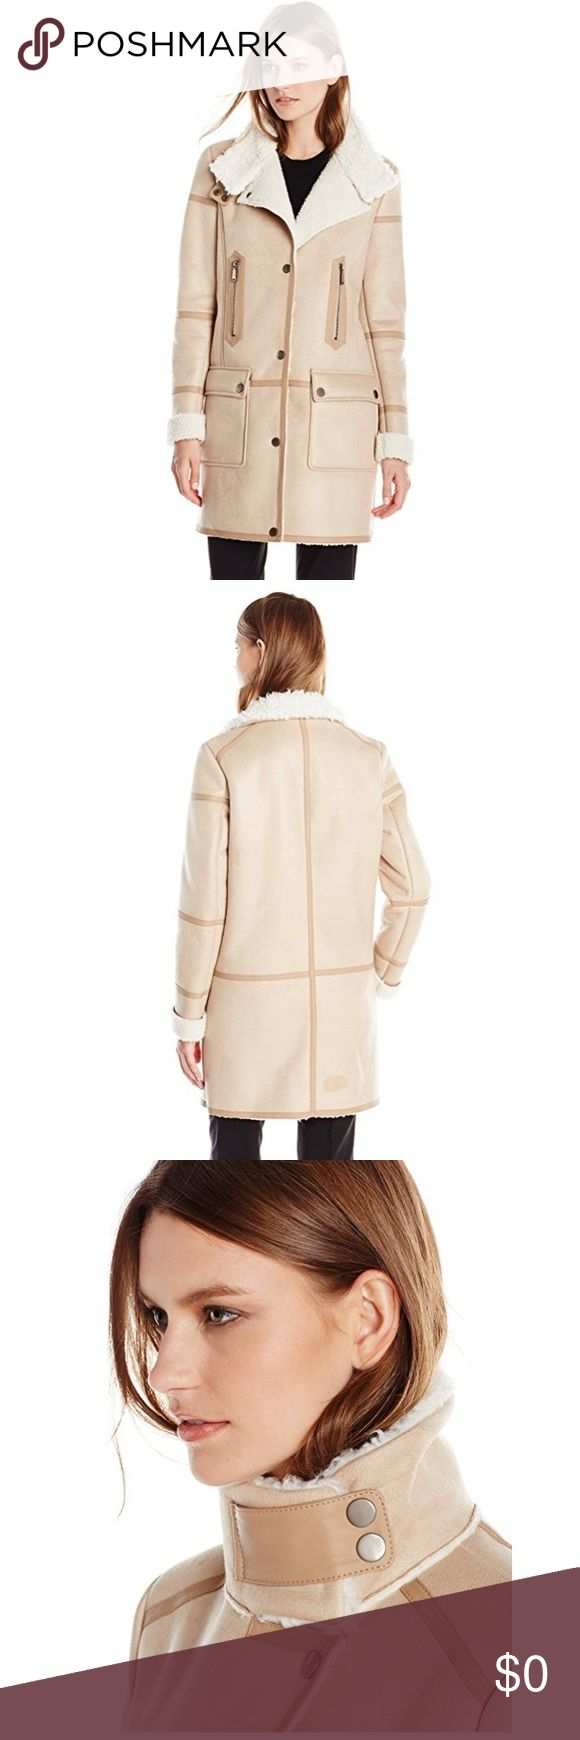 1000  ideas about Faux Shearling Coat on Pinterest | Shearling